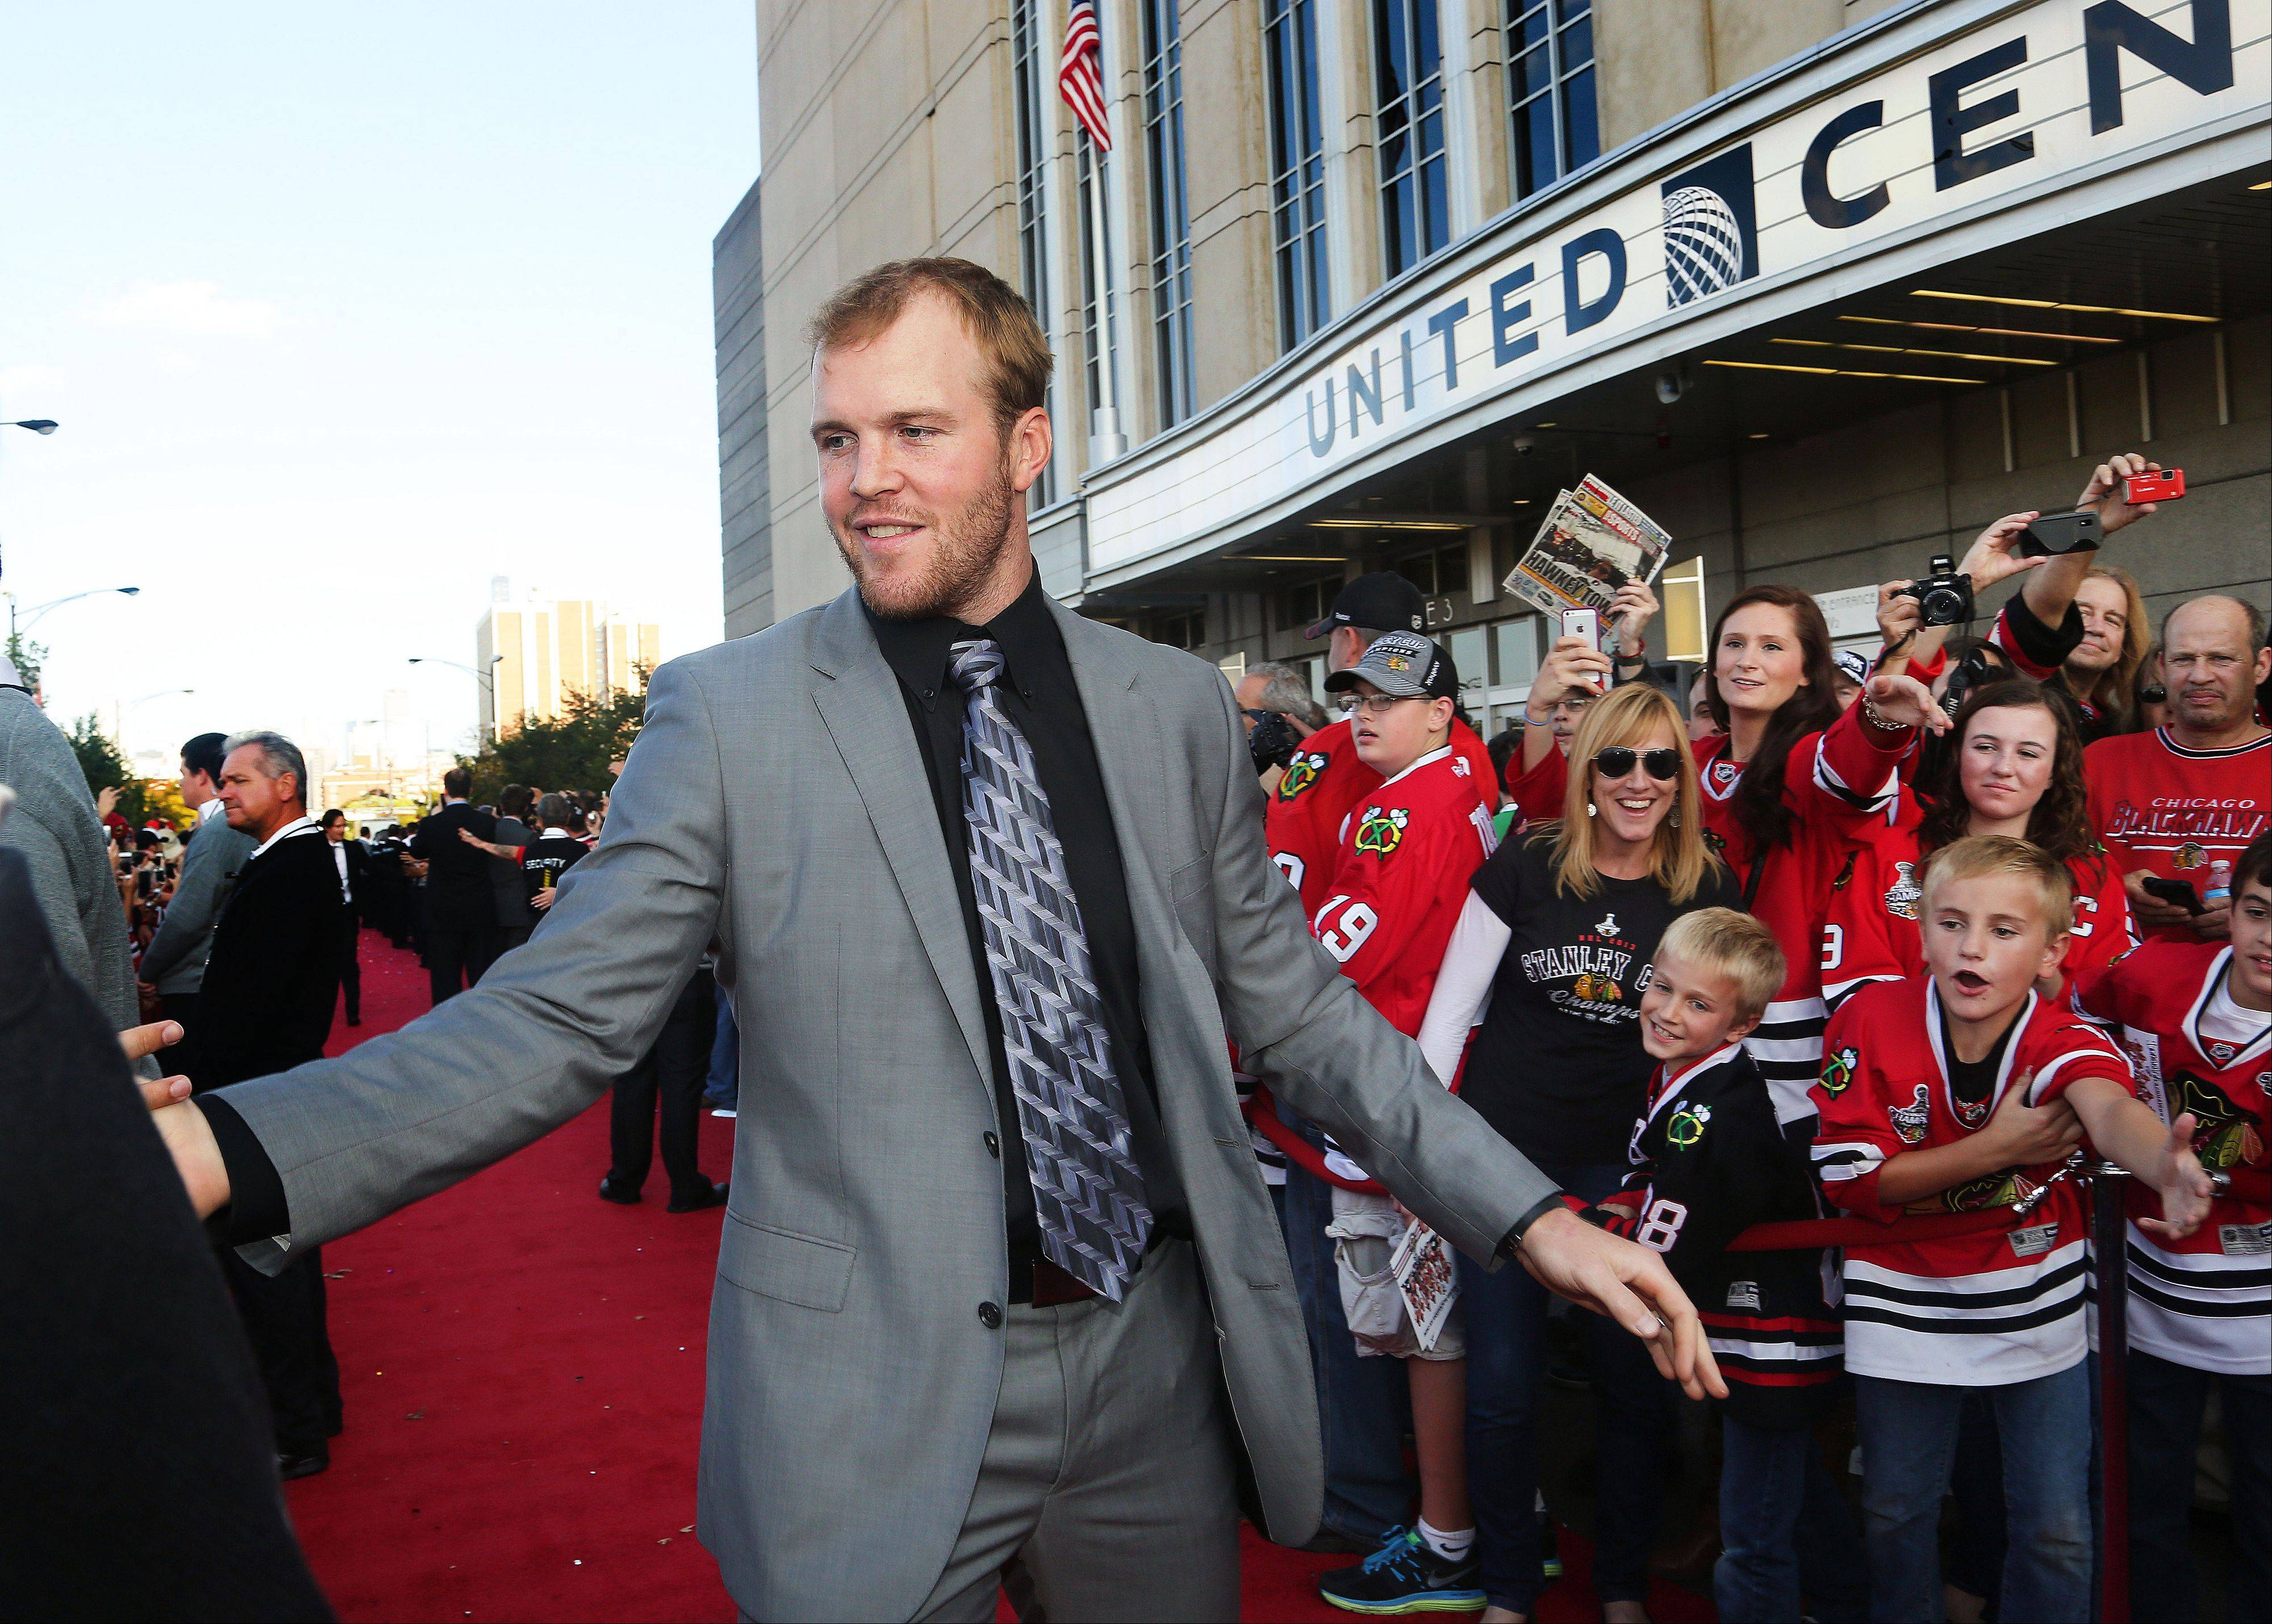 Steve Lundy/slundy@dailyherald.comChicago Blackhawks Bryan Bickell high fives fans prior to their opening game during a red carpet ceremony on Madison Avenue Tuesday at the United Center in Chicago.